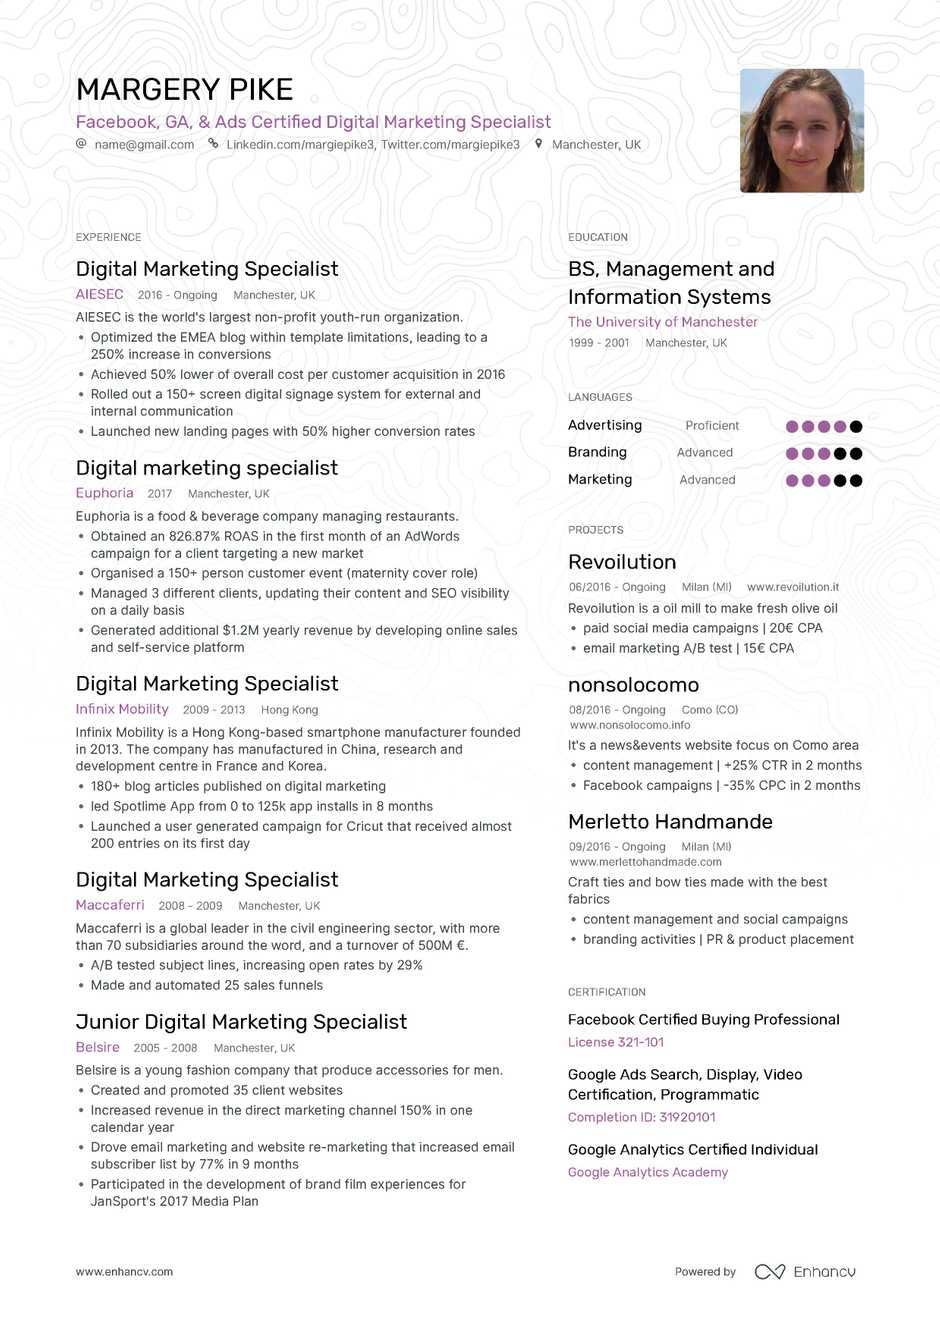 cfo resume example and guide for 2019